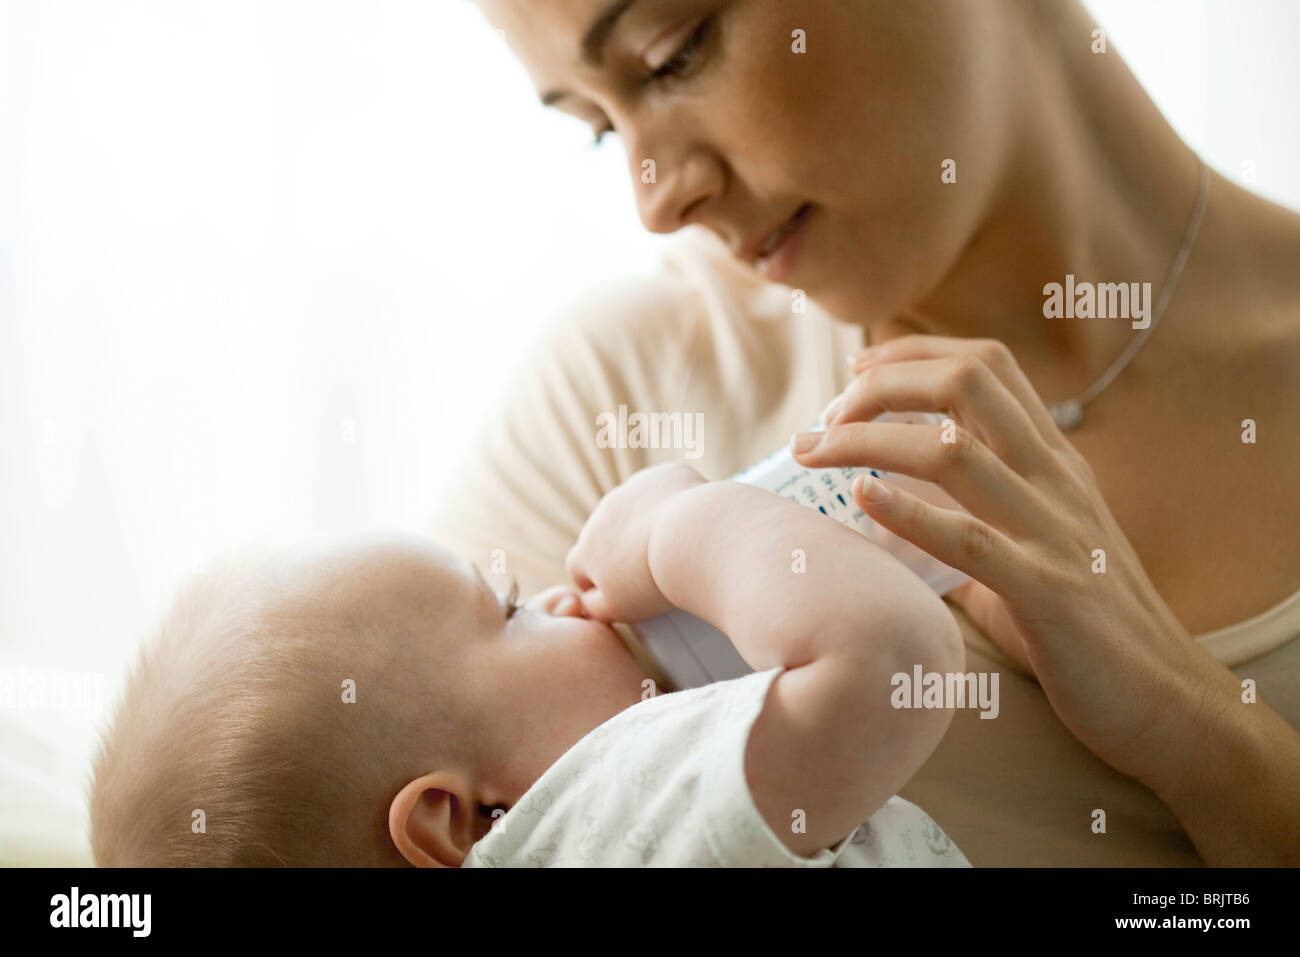 Mother feeding infant with baby bottle - Stock Image